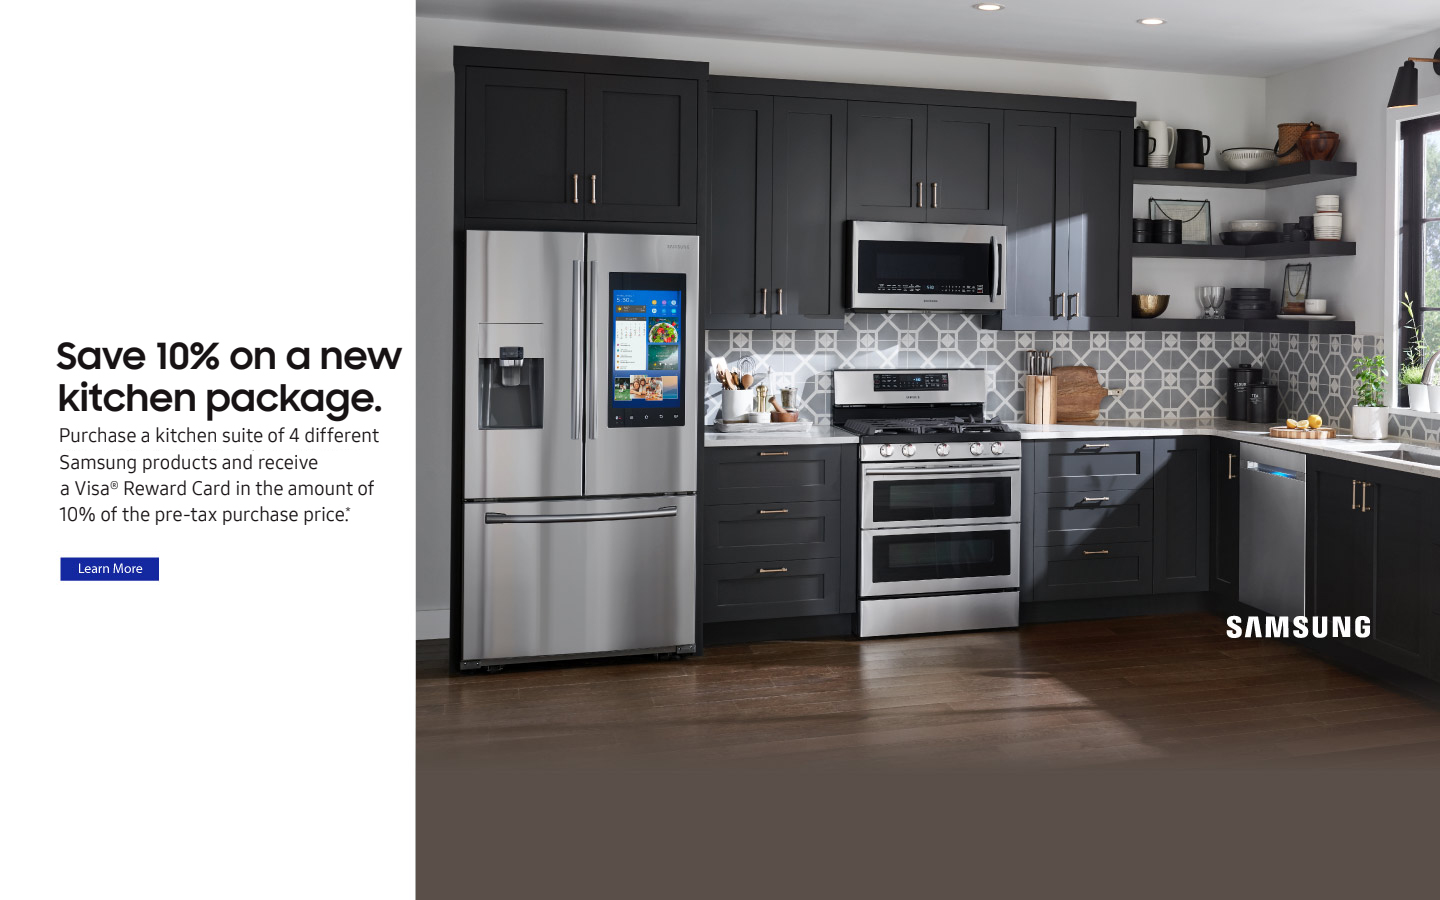 Samsung 10% Off Kitchen Package 2018 · Whirlpool Connected Appliances 2018